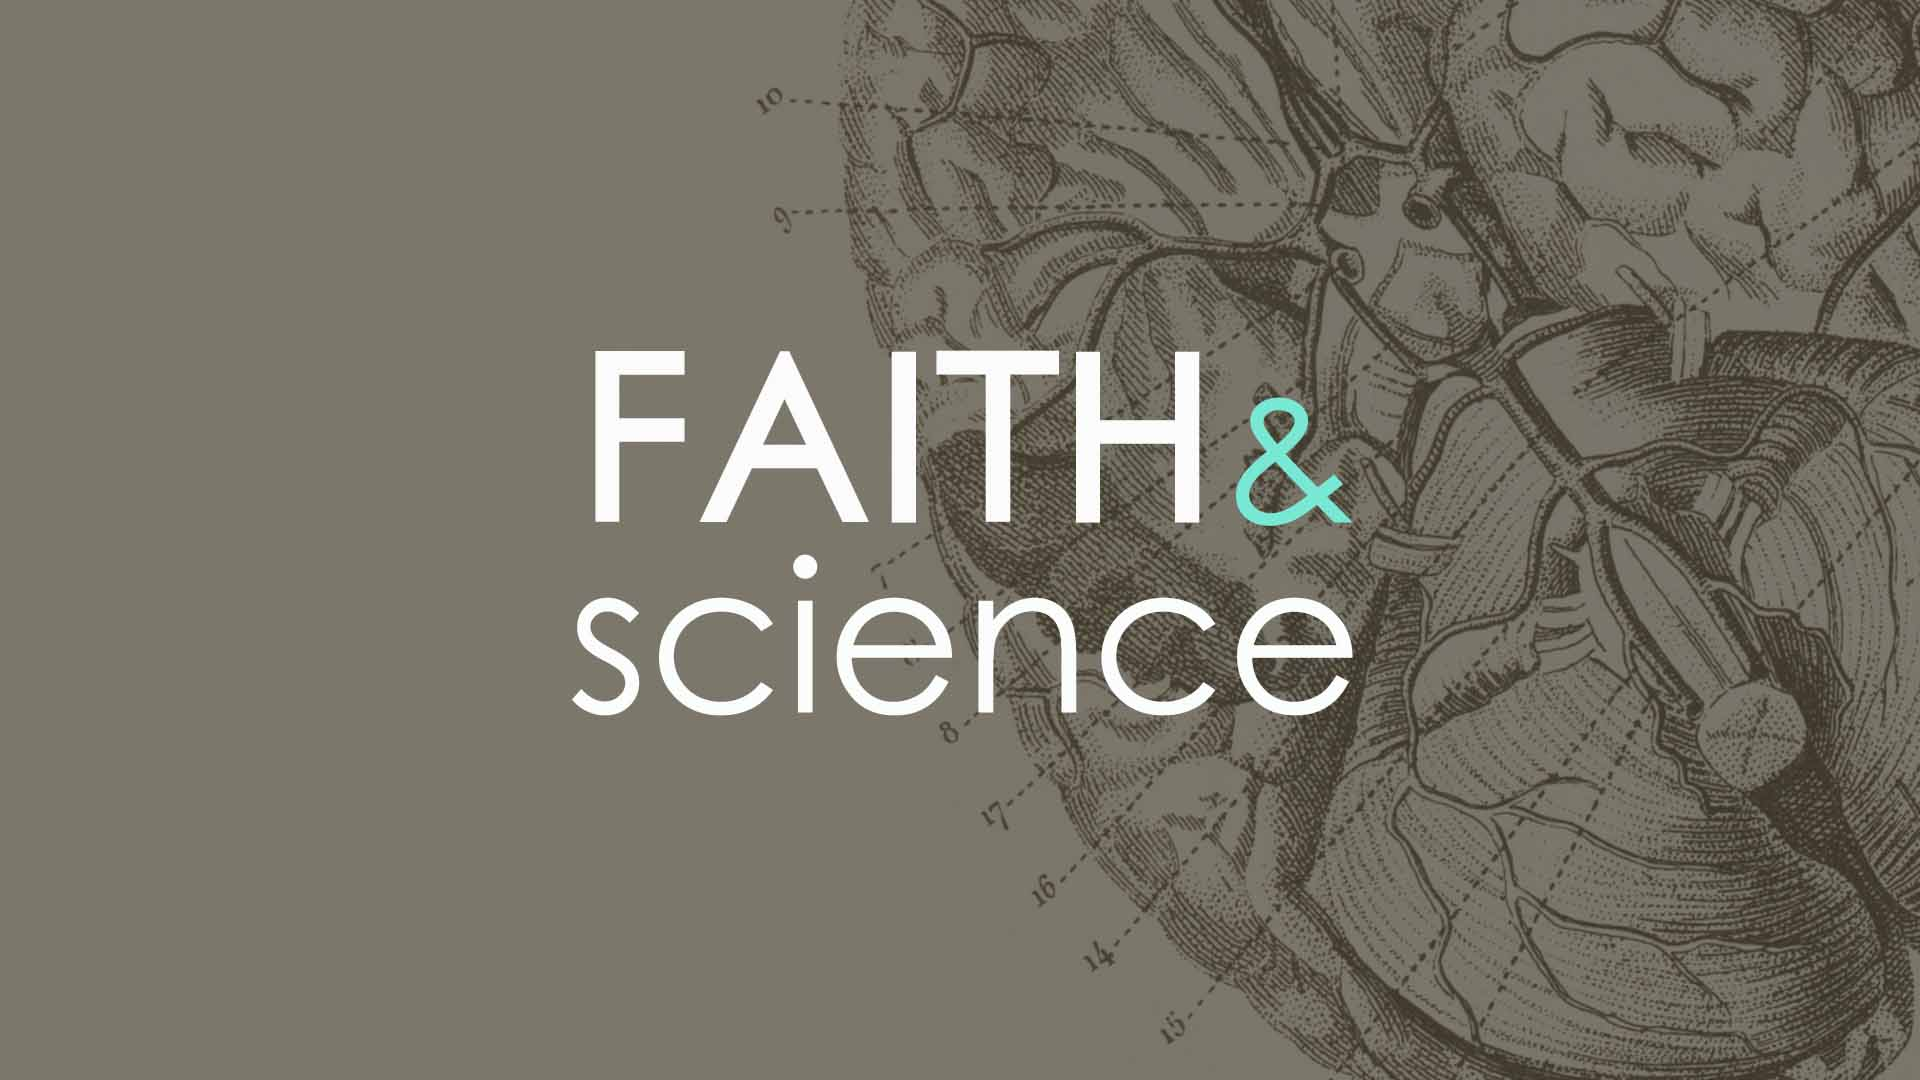 Faith and Science Image